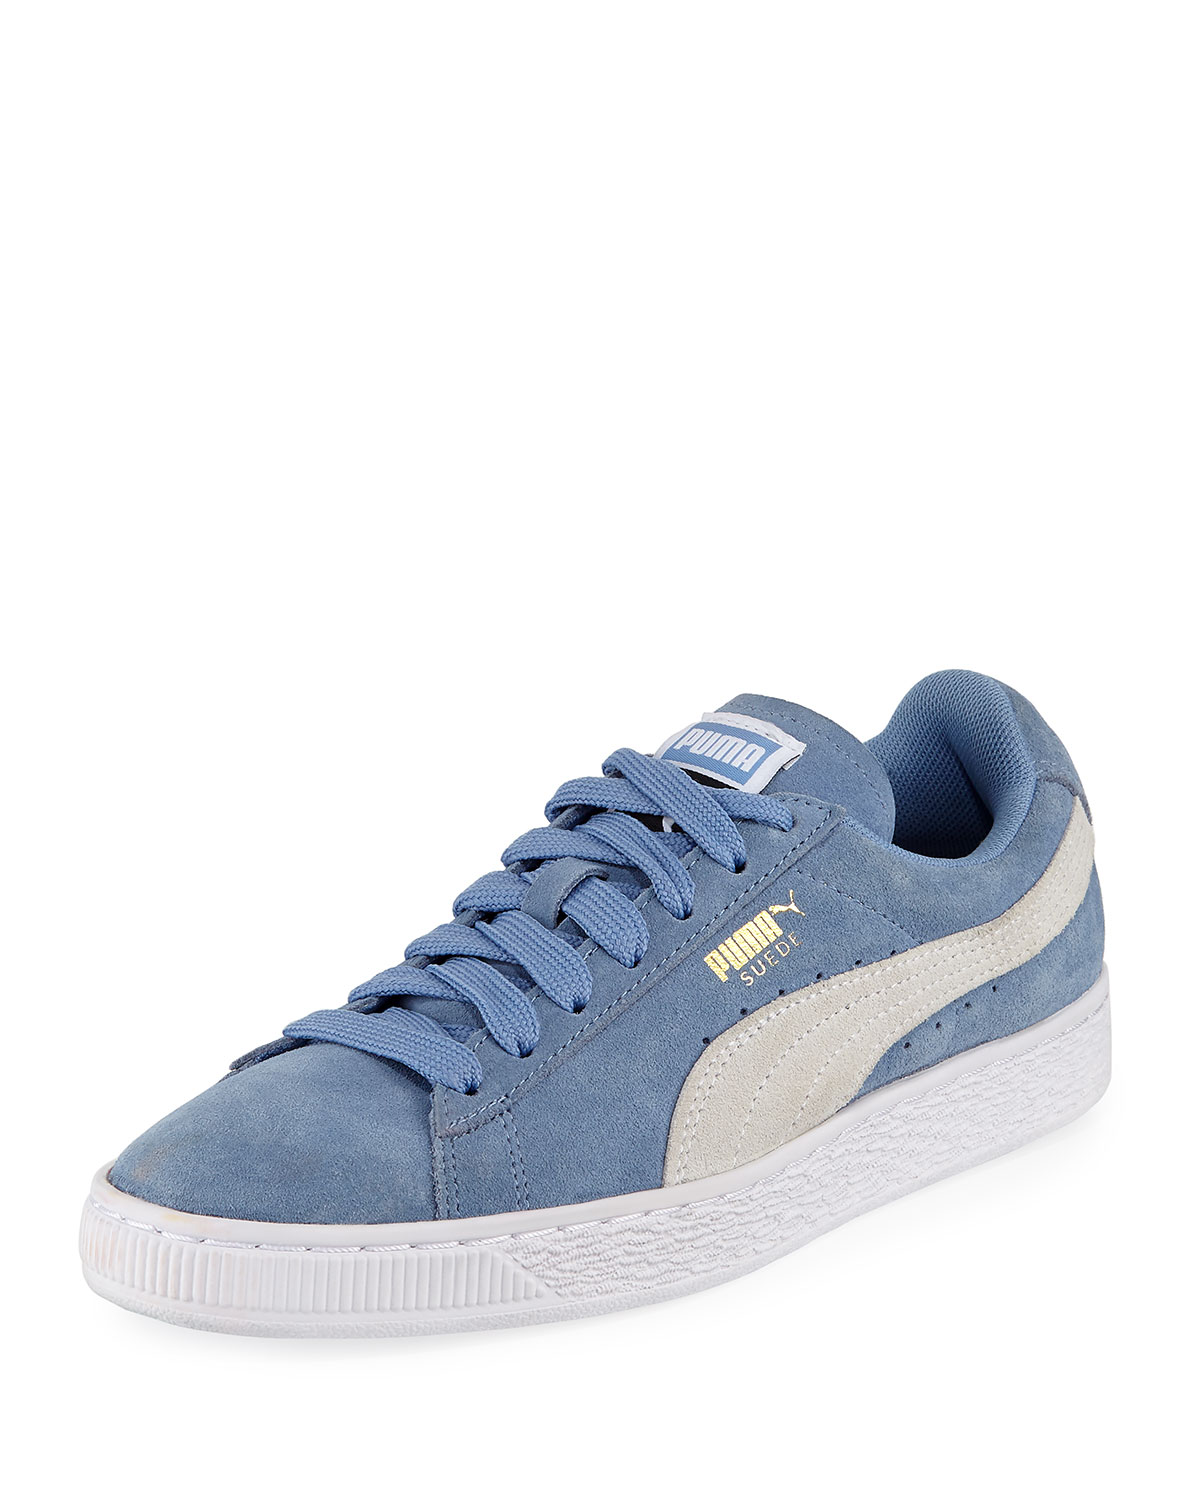 6a906fc06c56 Puma Classic Suede Lace-Up Sneakers